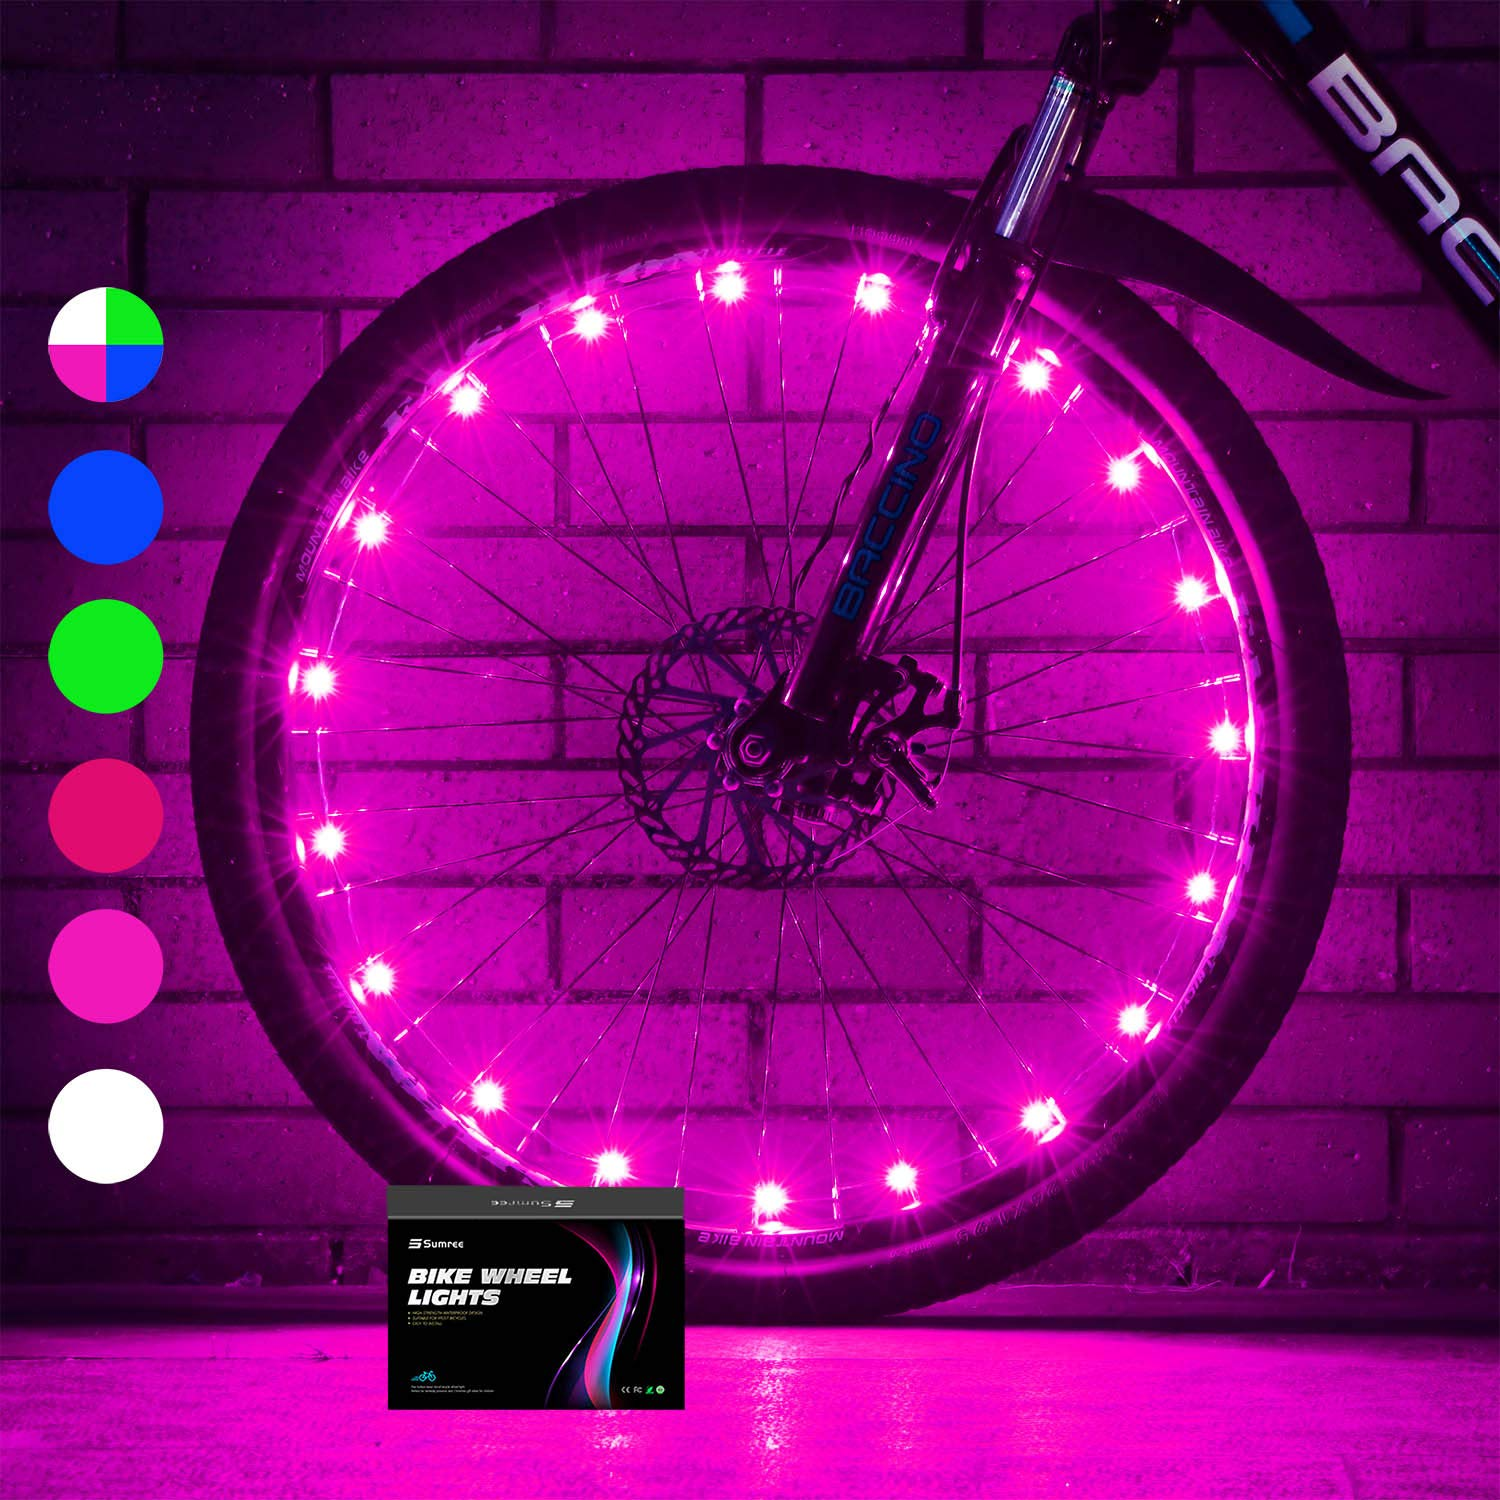 Sumree 2-Tire Pack LED Bike Wheel Lights Bike Spoke Light Super Bright Cycling Bicycle Light with Batteries Included